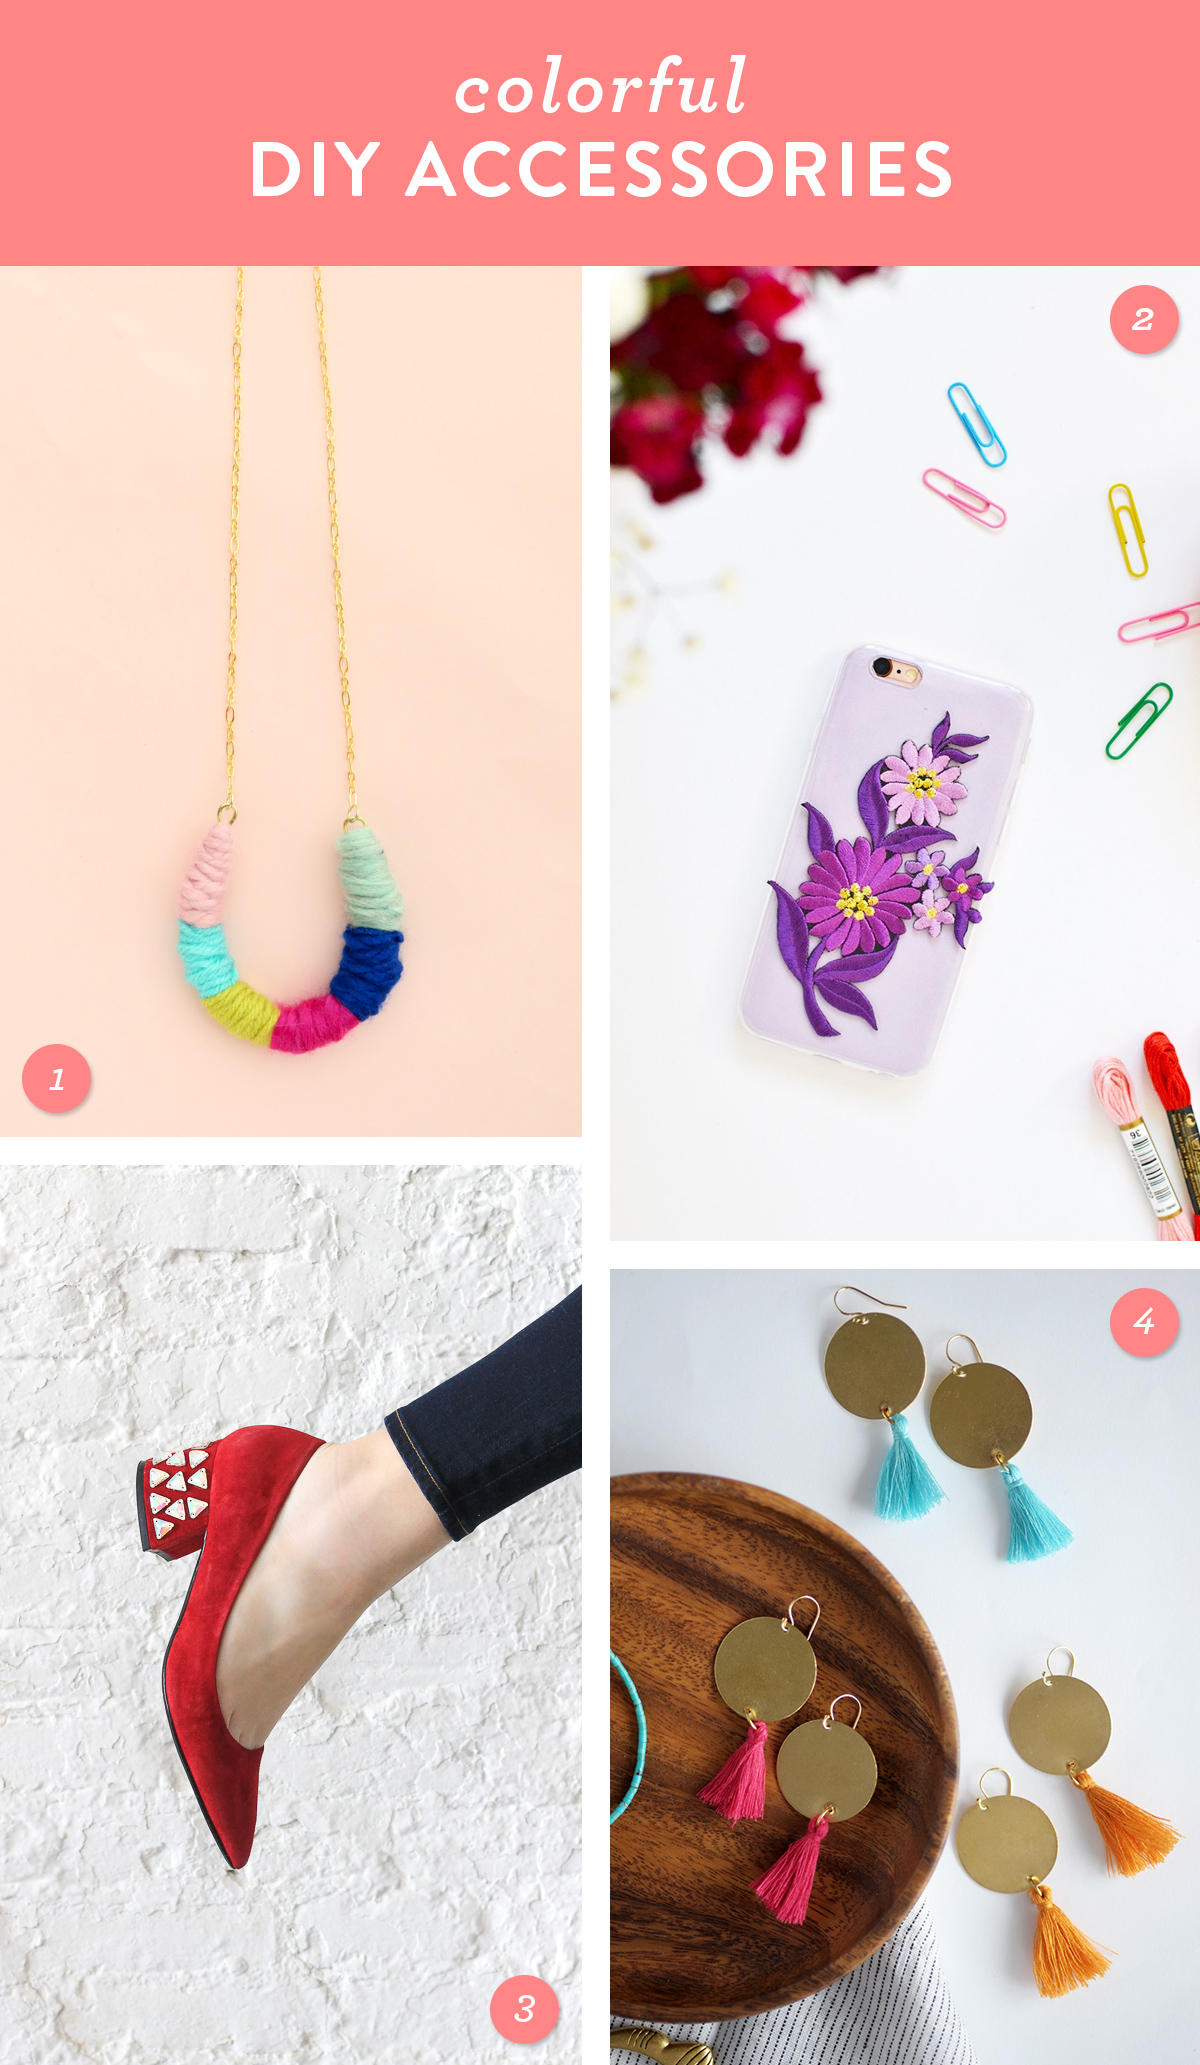 Treat yourself to one of these cute and colorful DIY accessories!